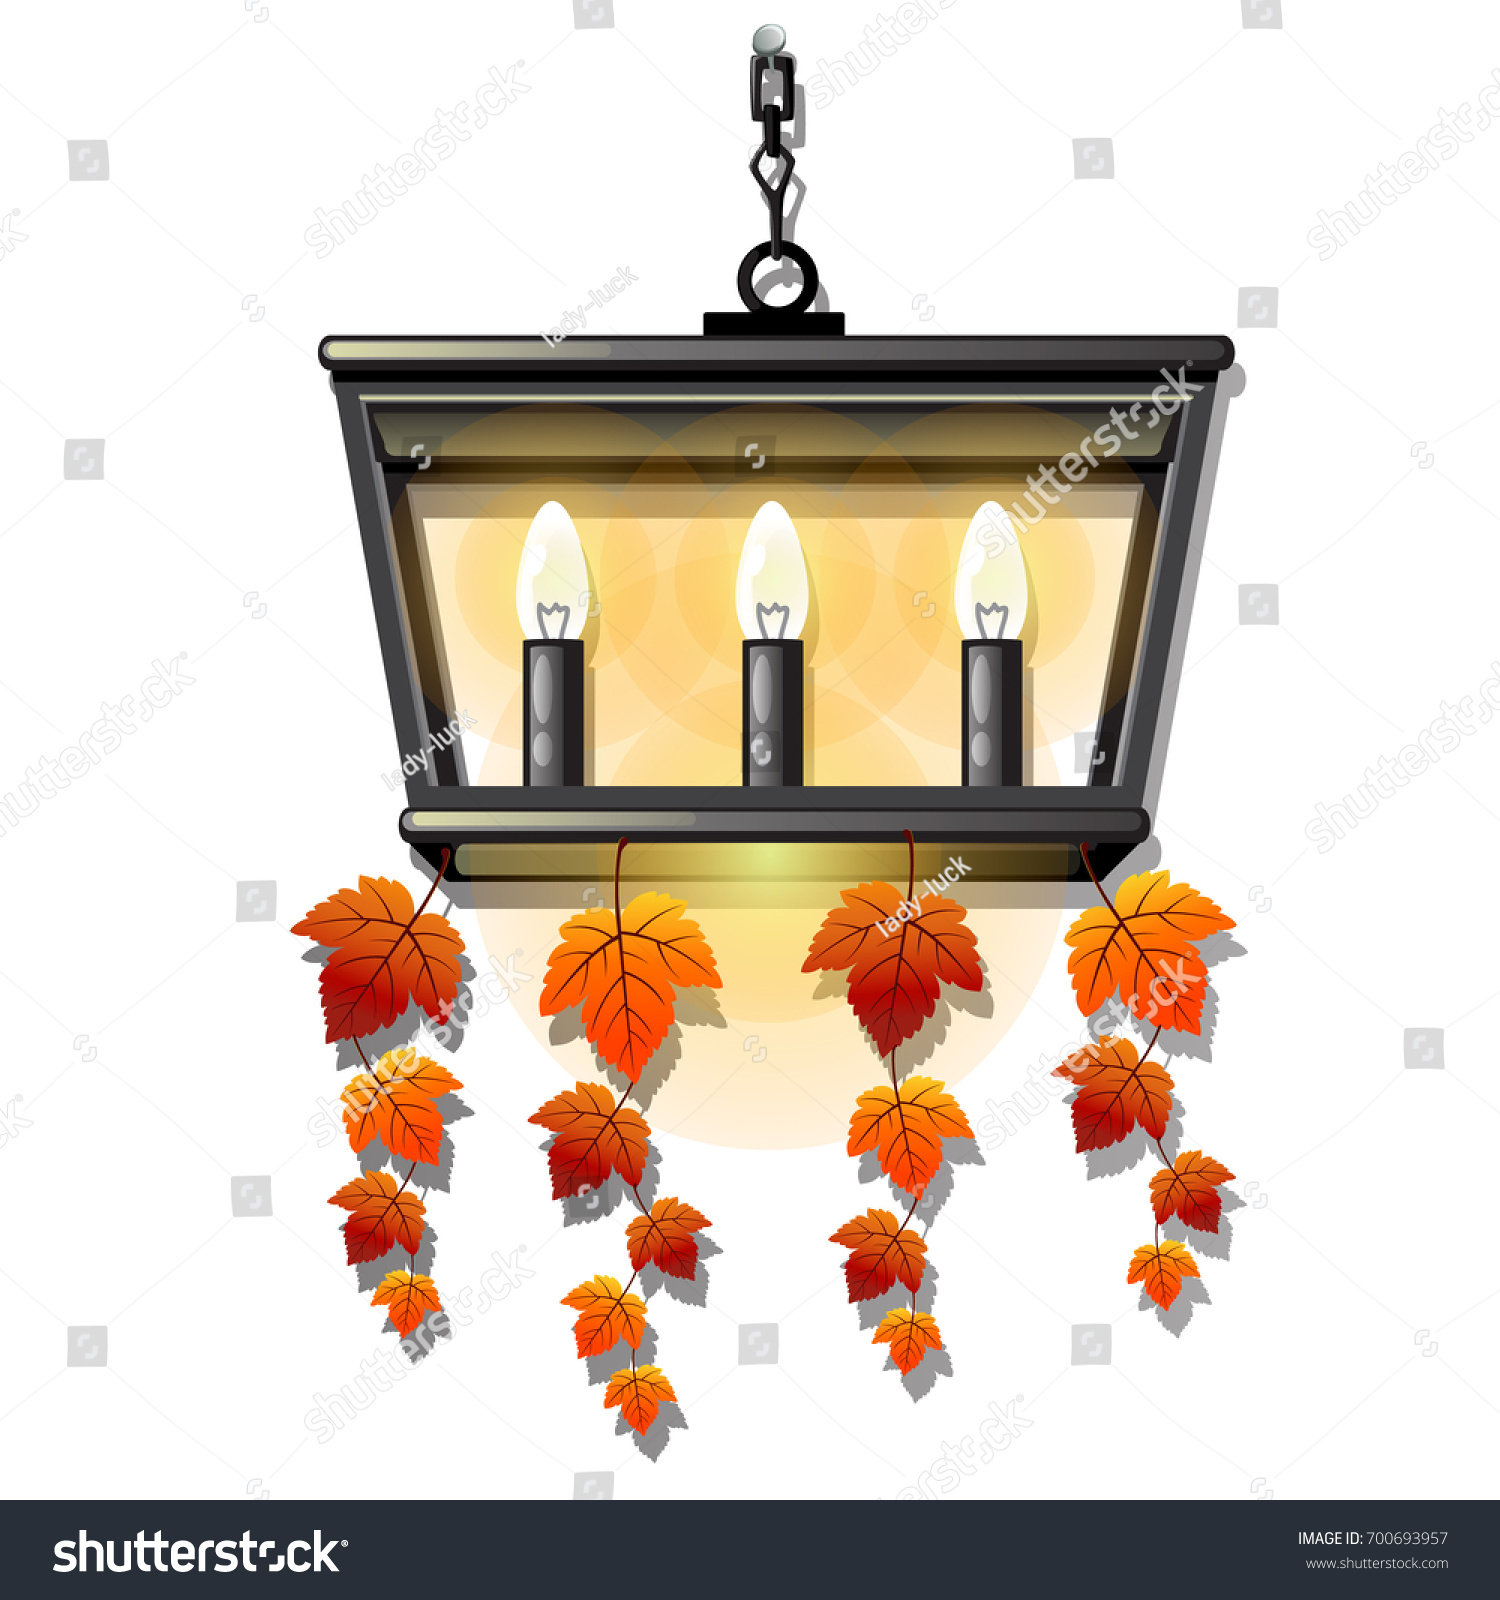 Decorative Hanging Wall Lamp Sconce Bulbs Stock Vector 700693957 ...